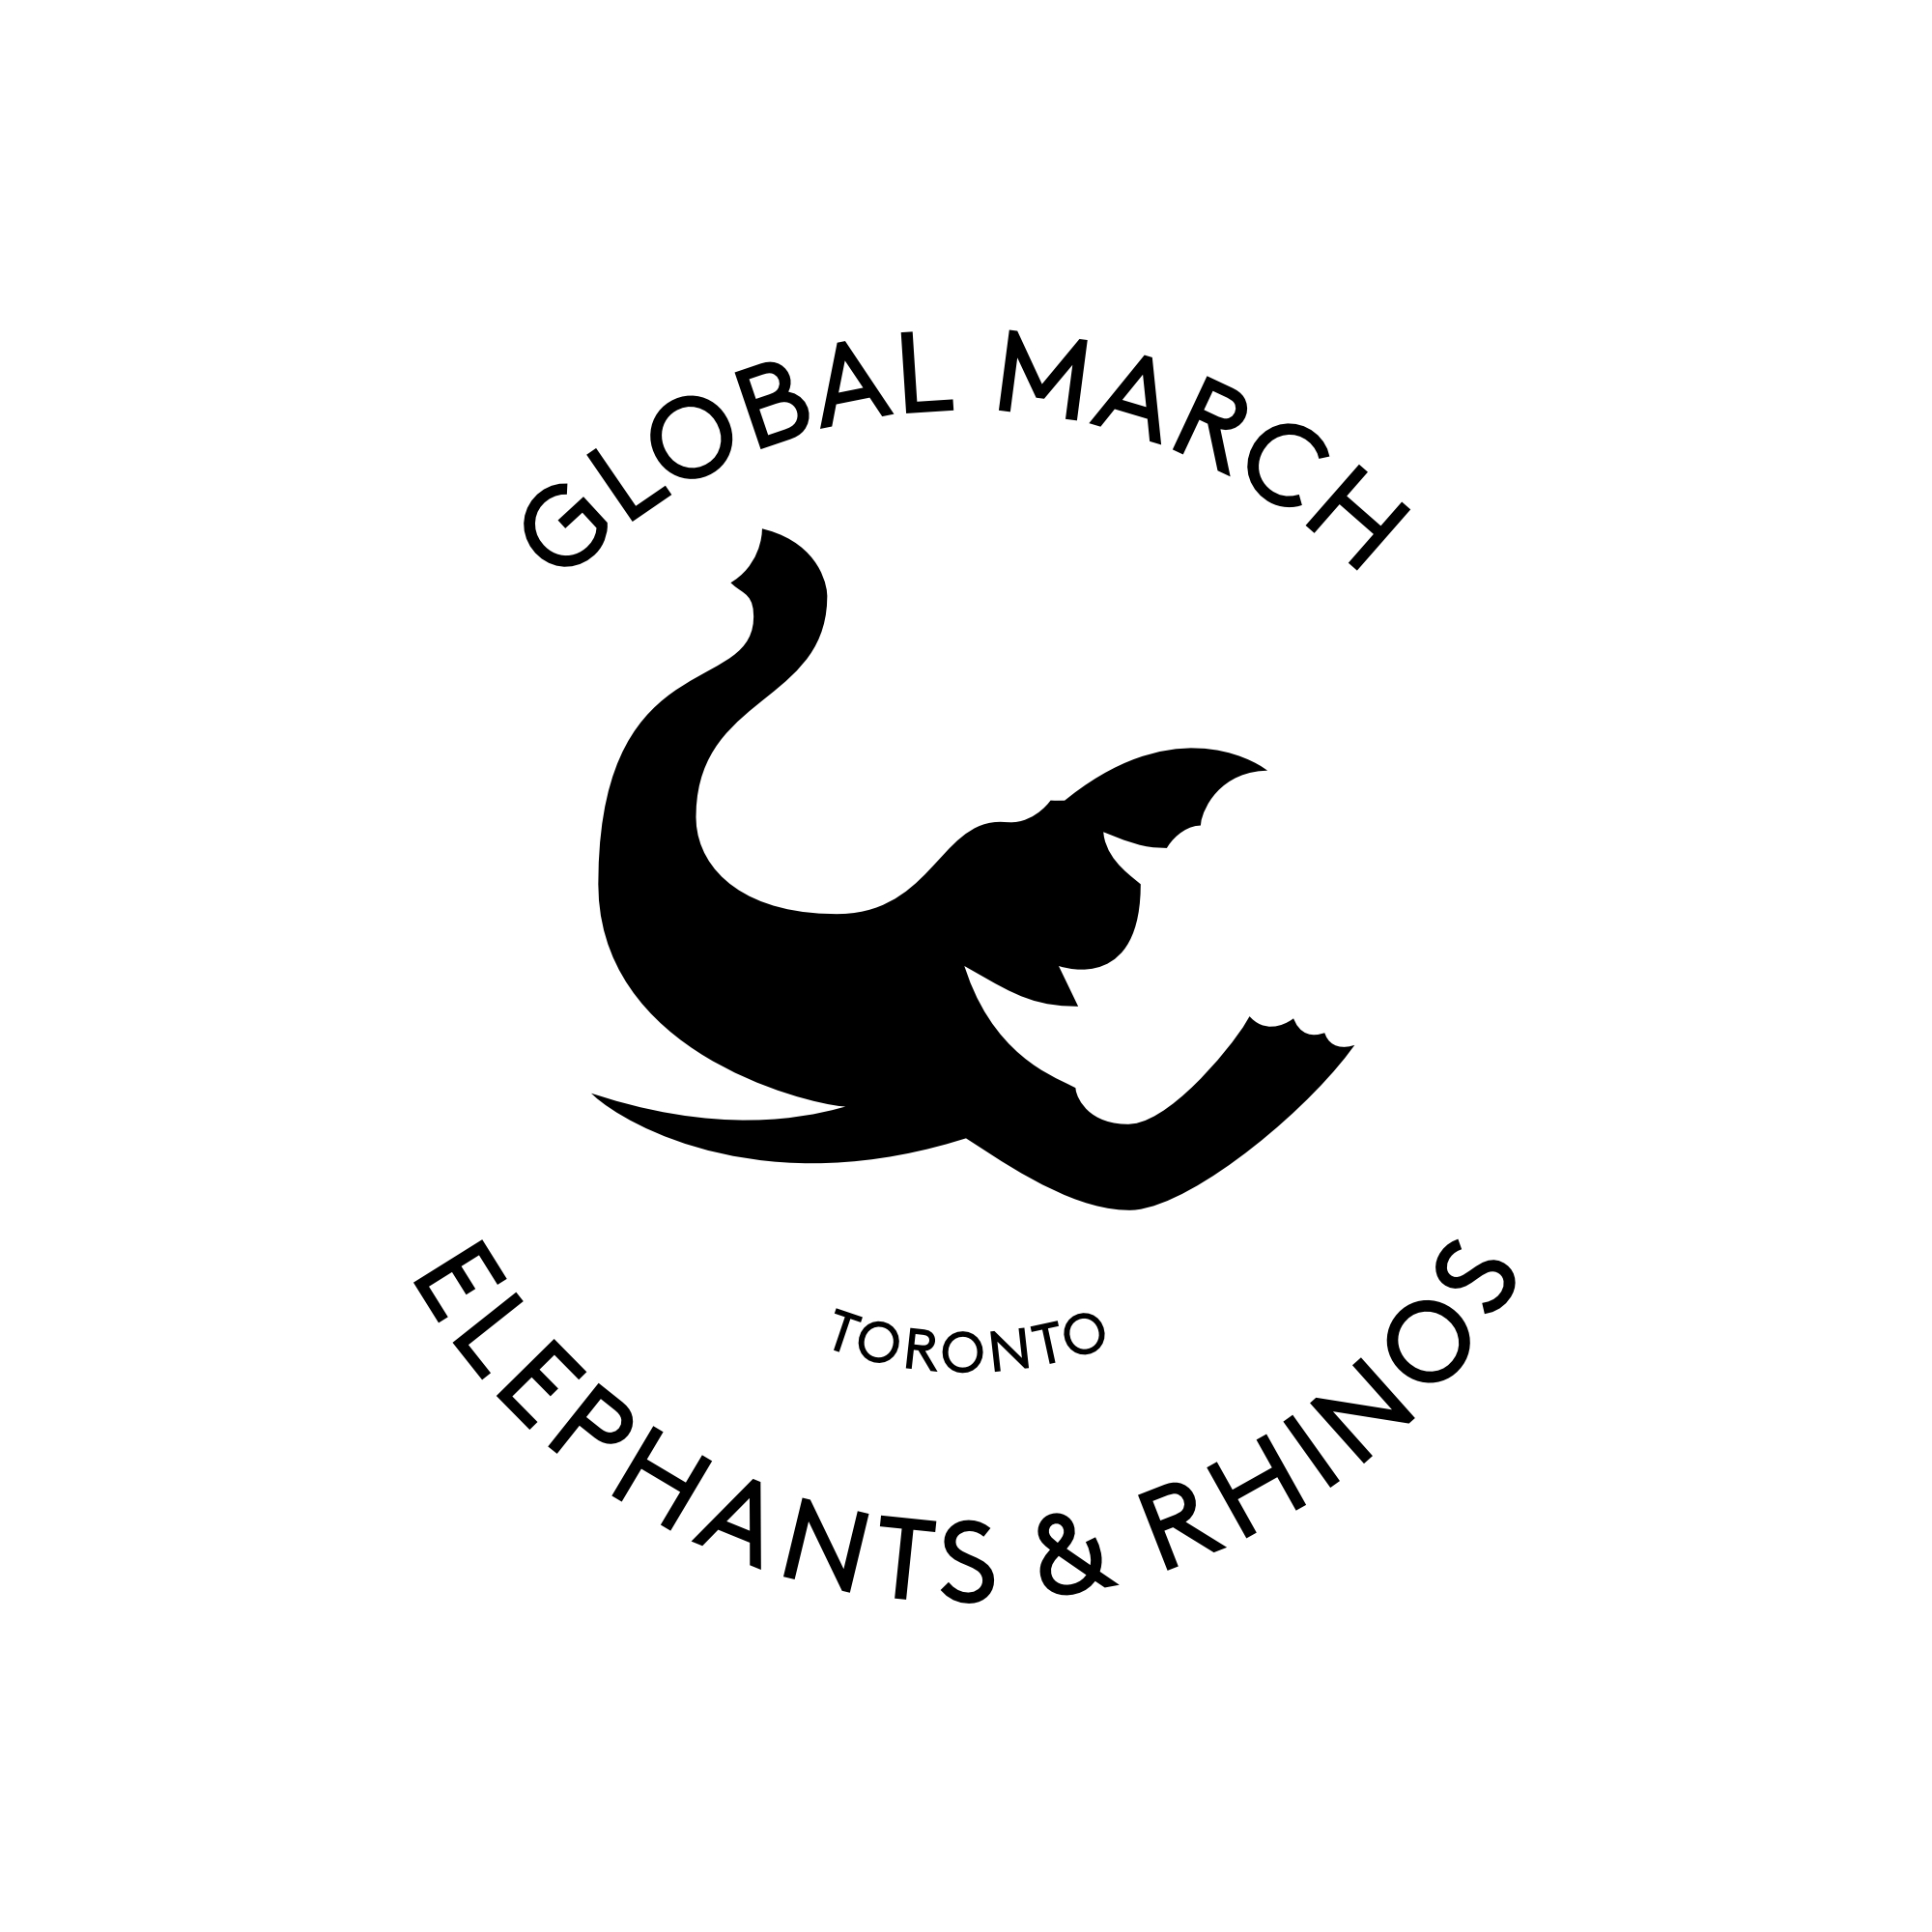 Global March for Elephants & Rhinos logo